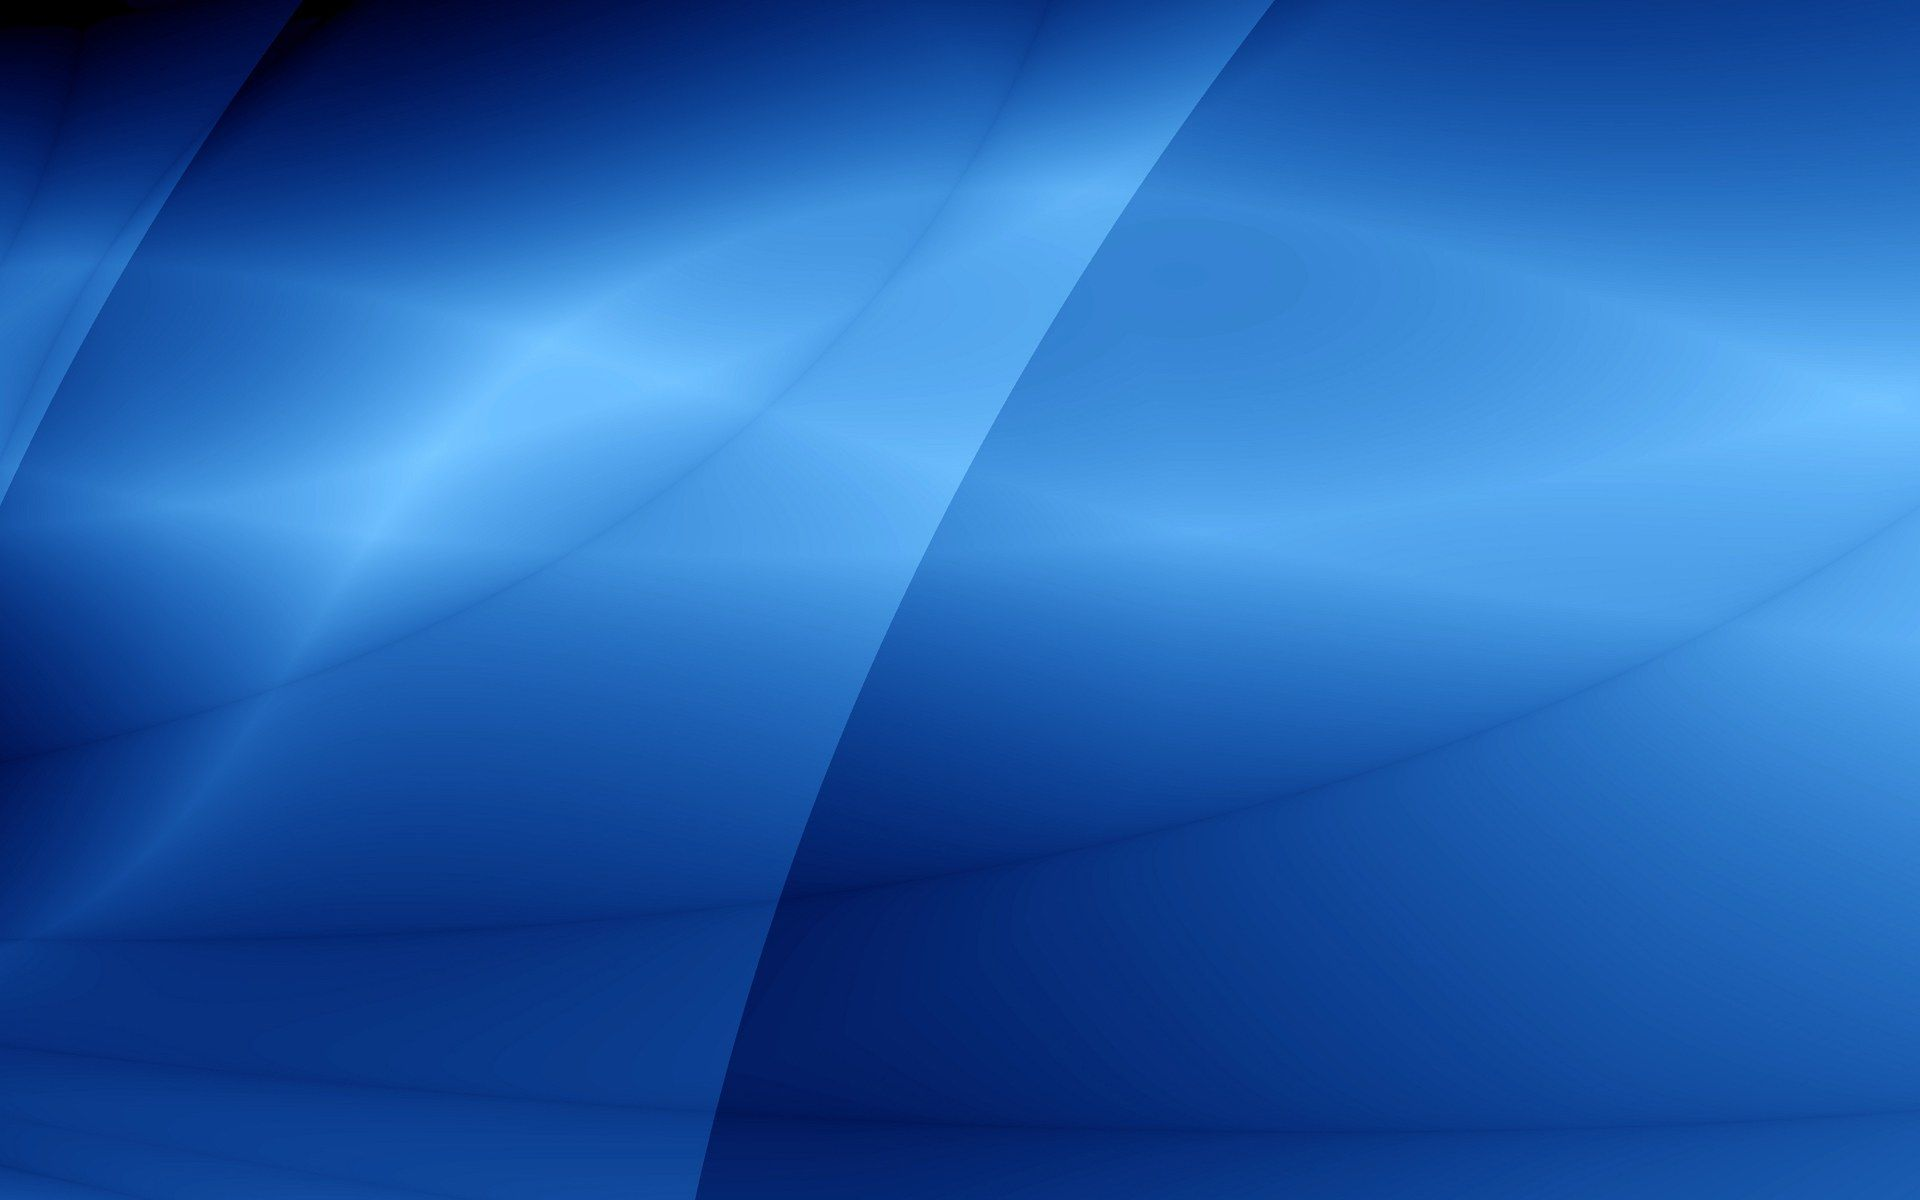 Blue Abstract Wallpapers Gambar